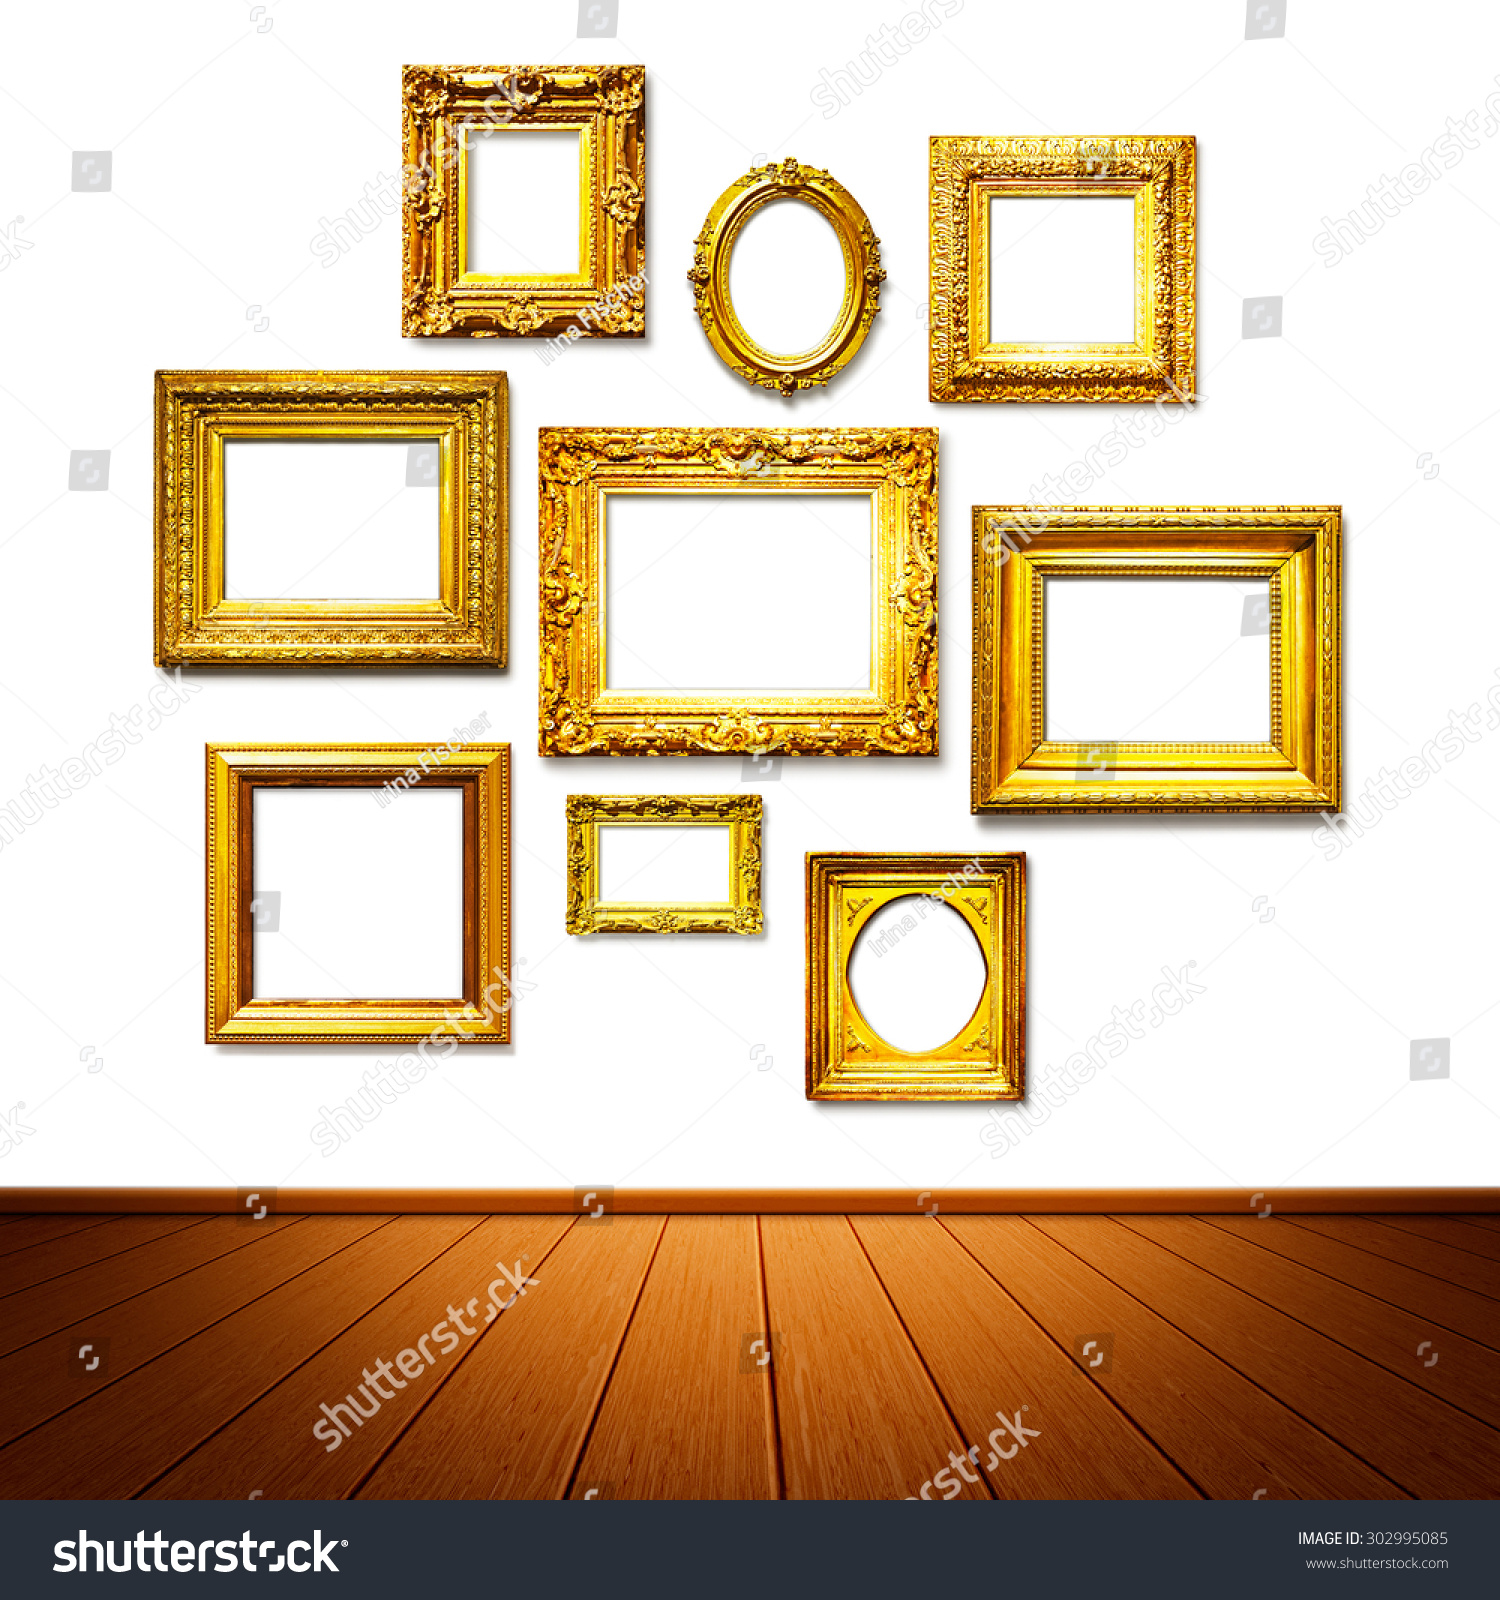 Antique Golden Frames On Wall Art Stock Photo (Royalty Free ...